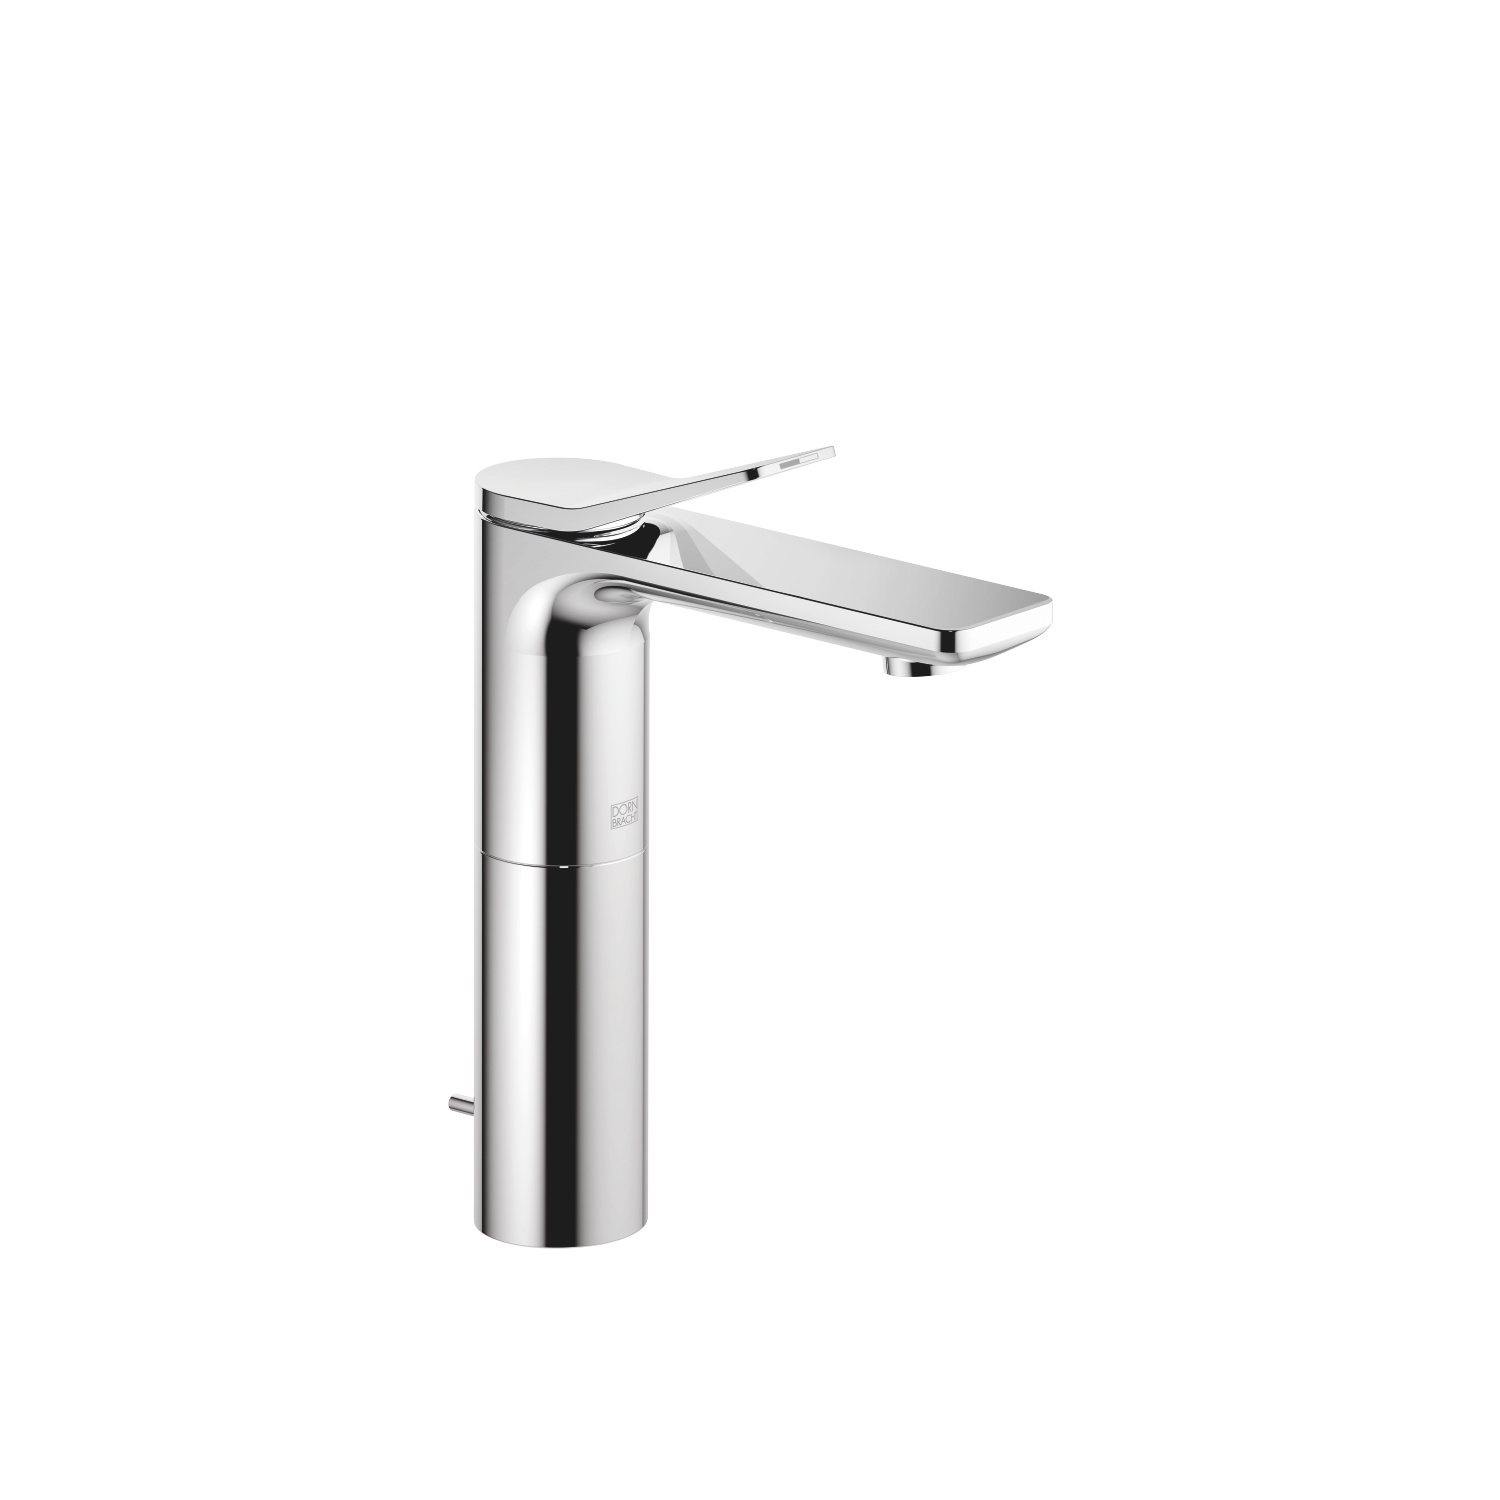 Single-lever basin mixer with high spout with pop-up waste - polished chrome - 33 506 845-00